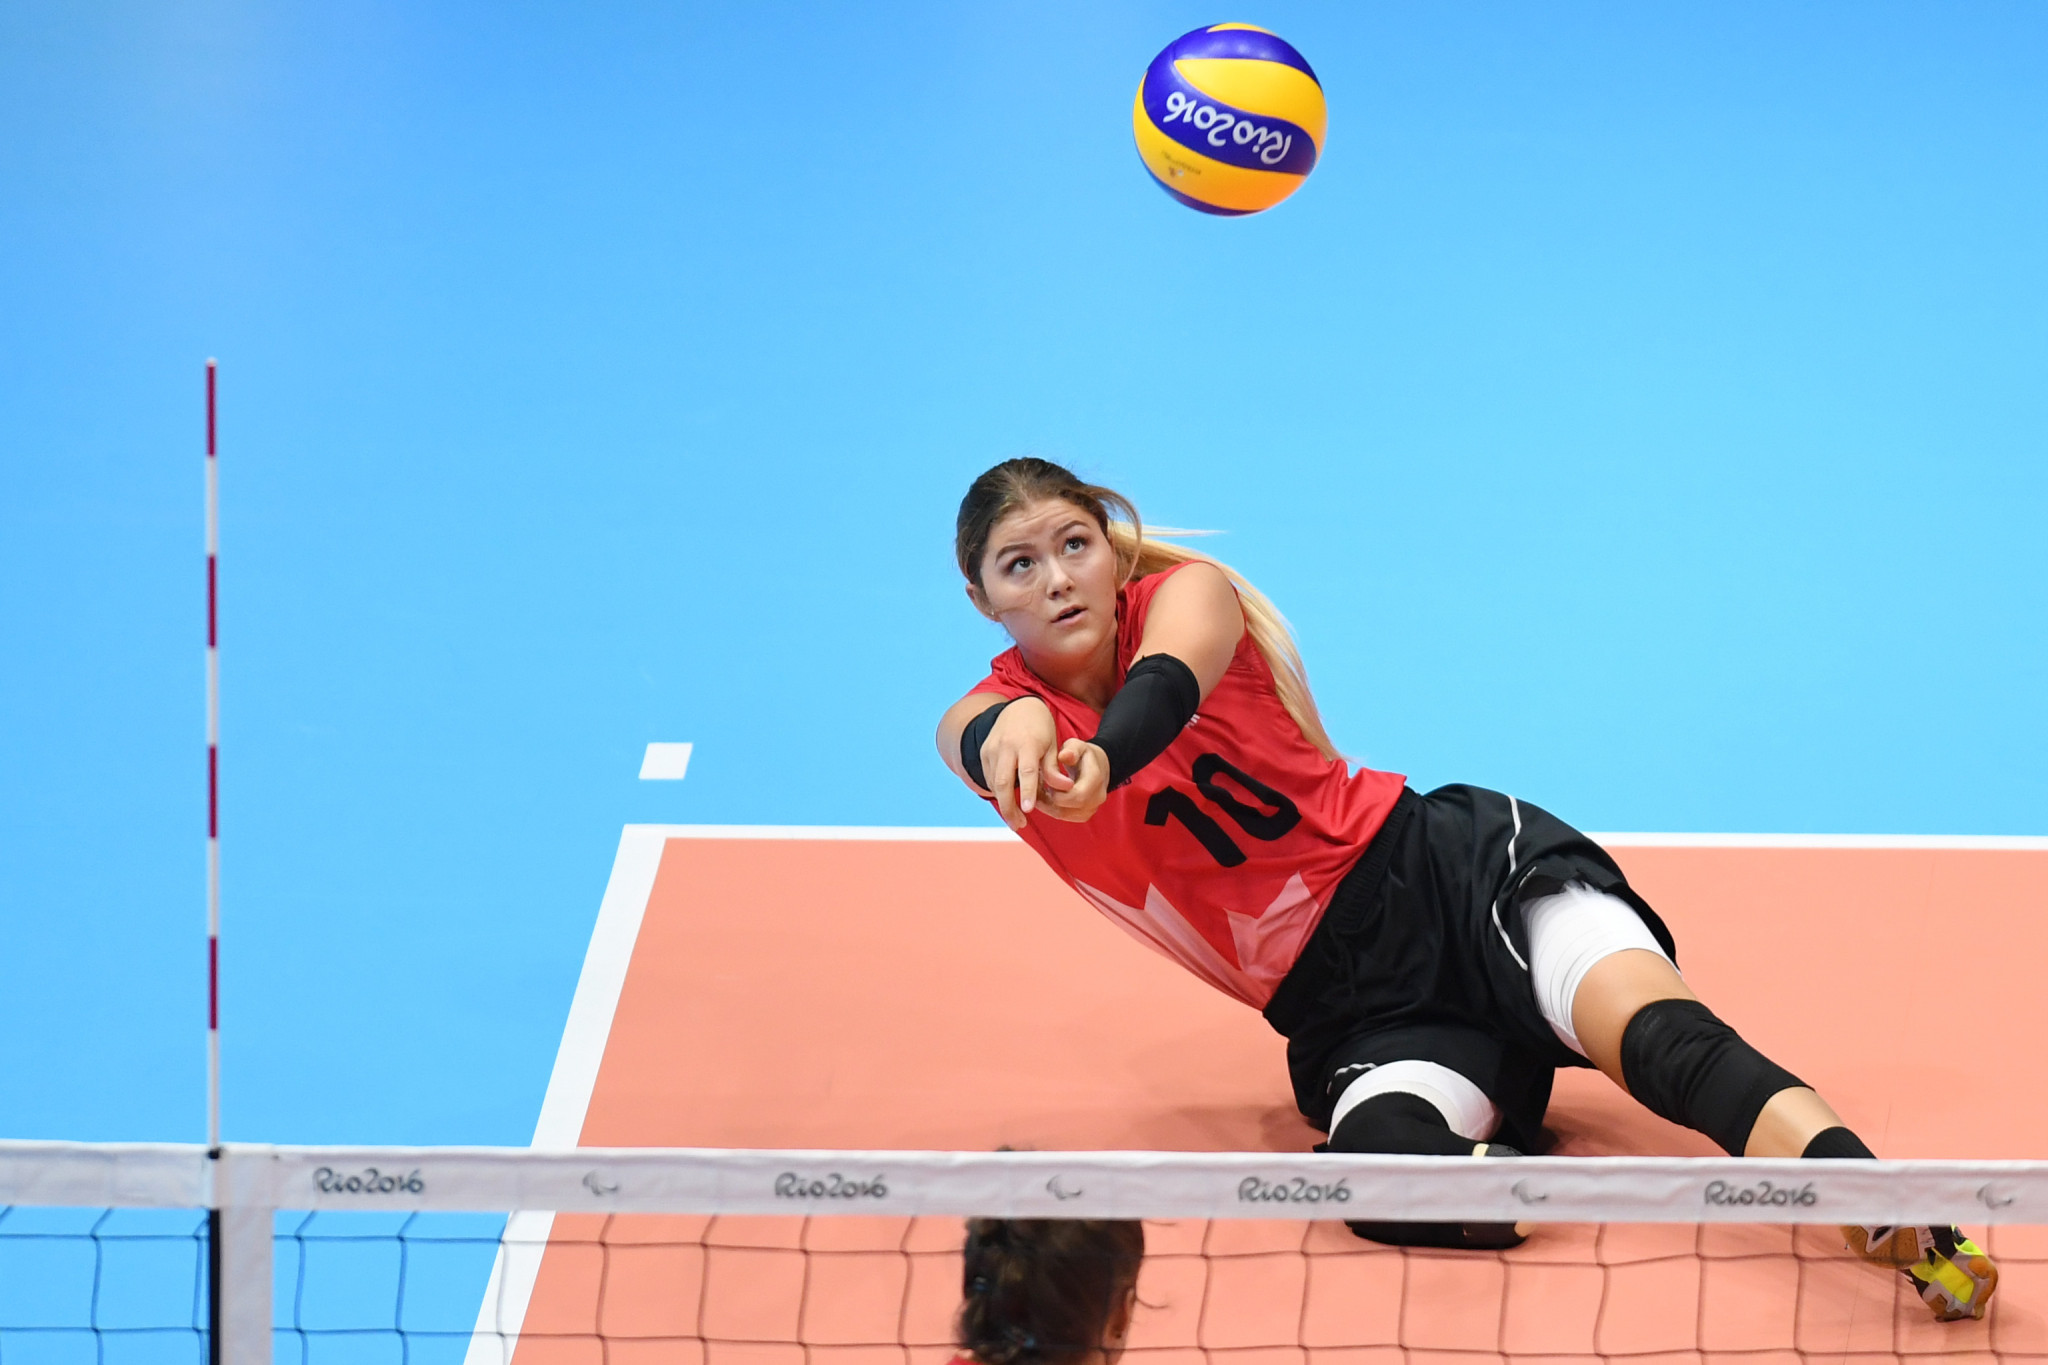 Sitting volleyball has been a Paralympic discipline since 1980 ©Getty Images